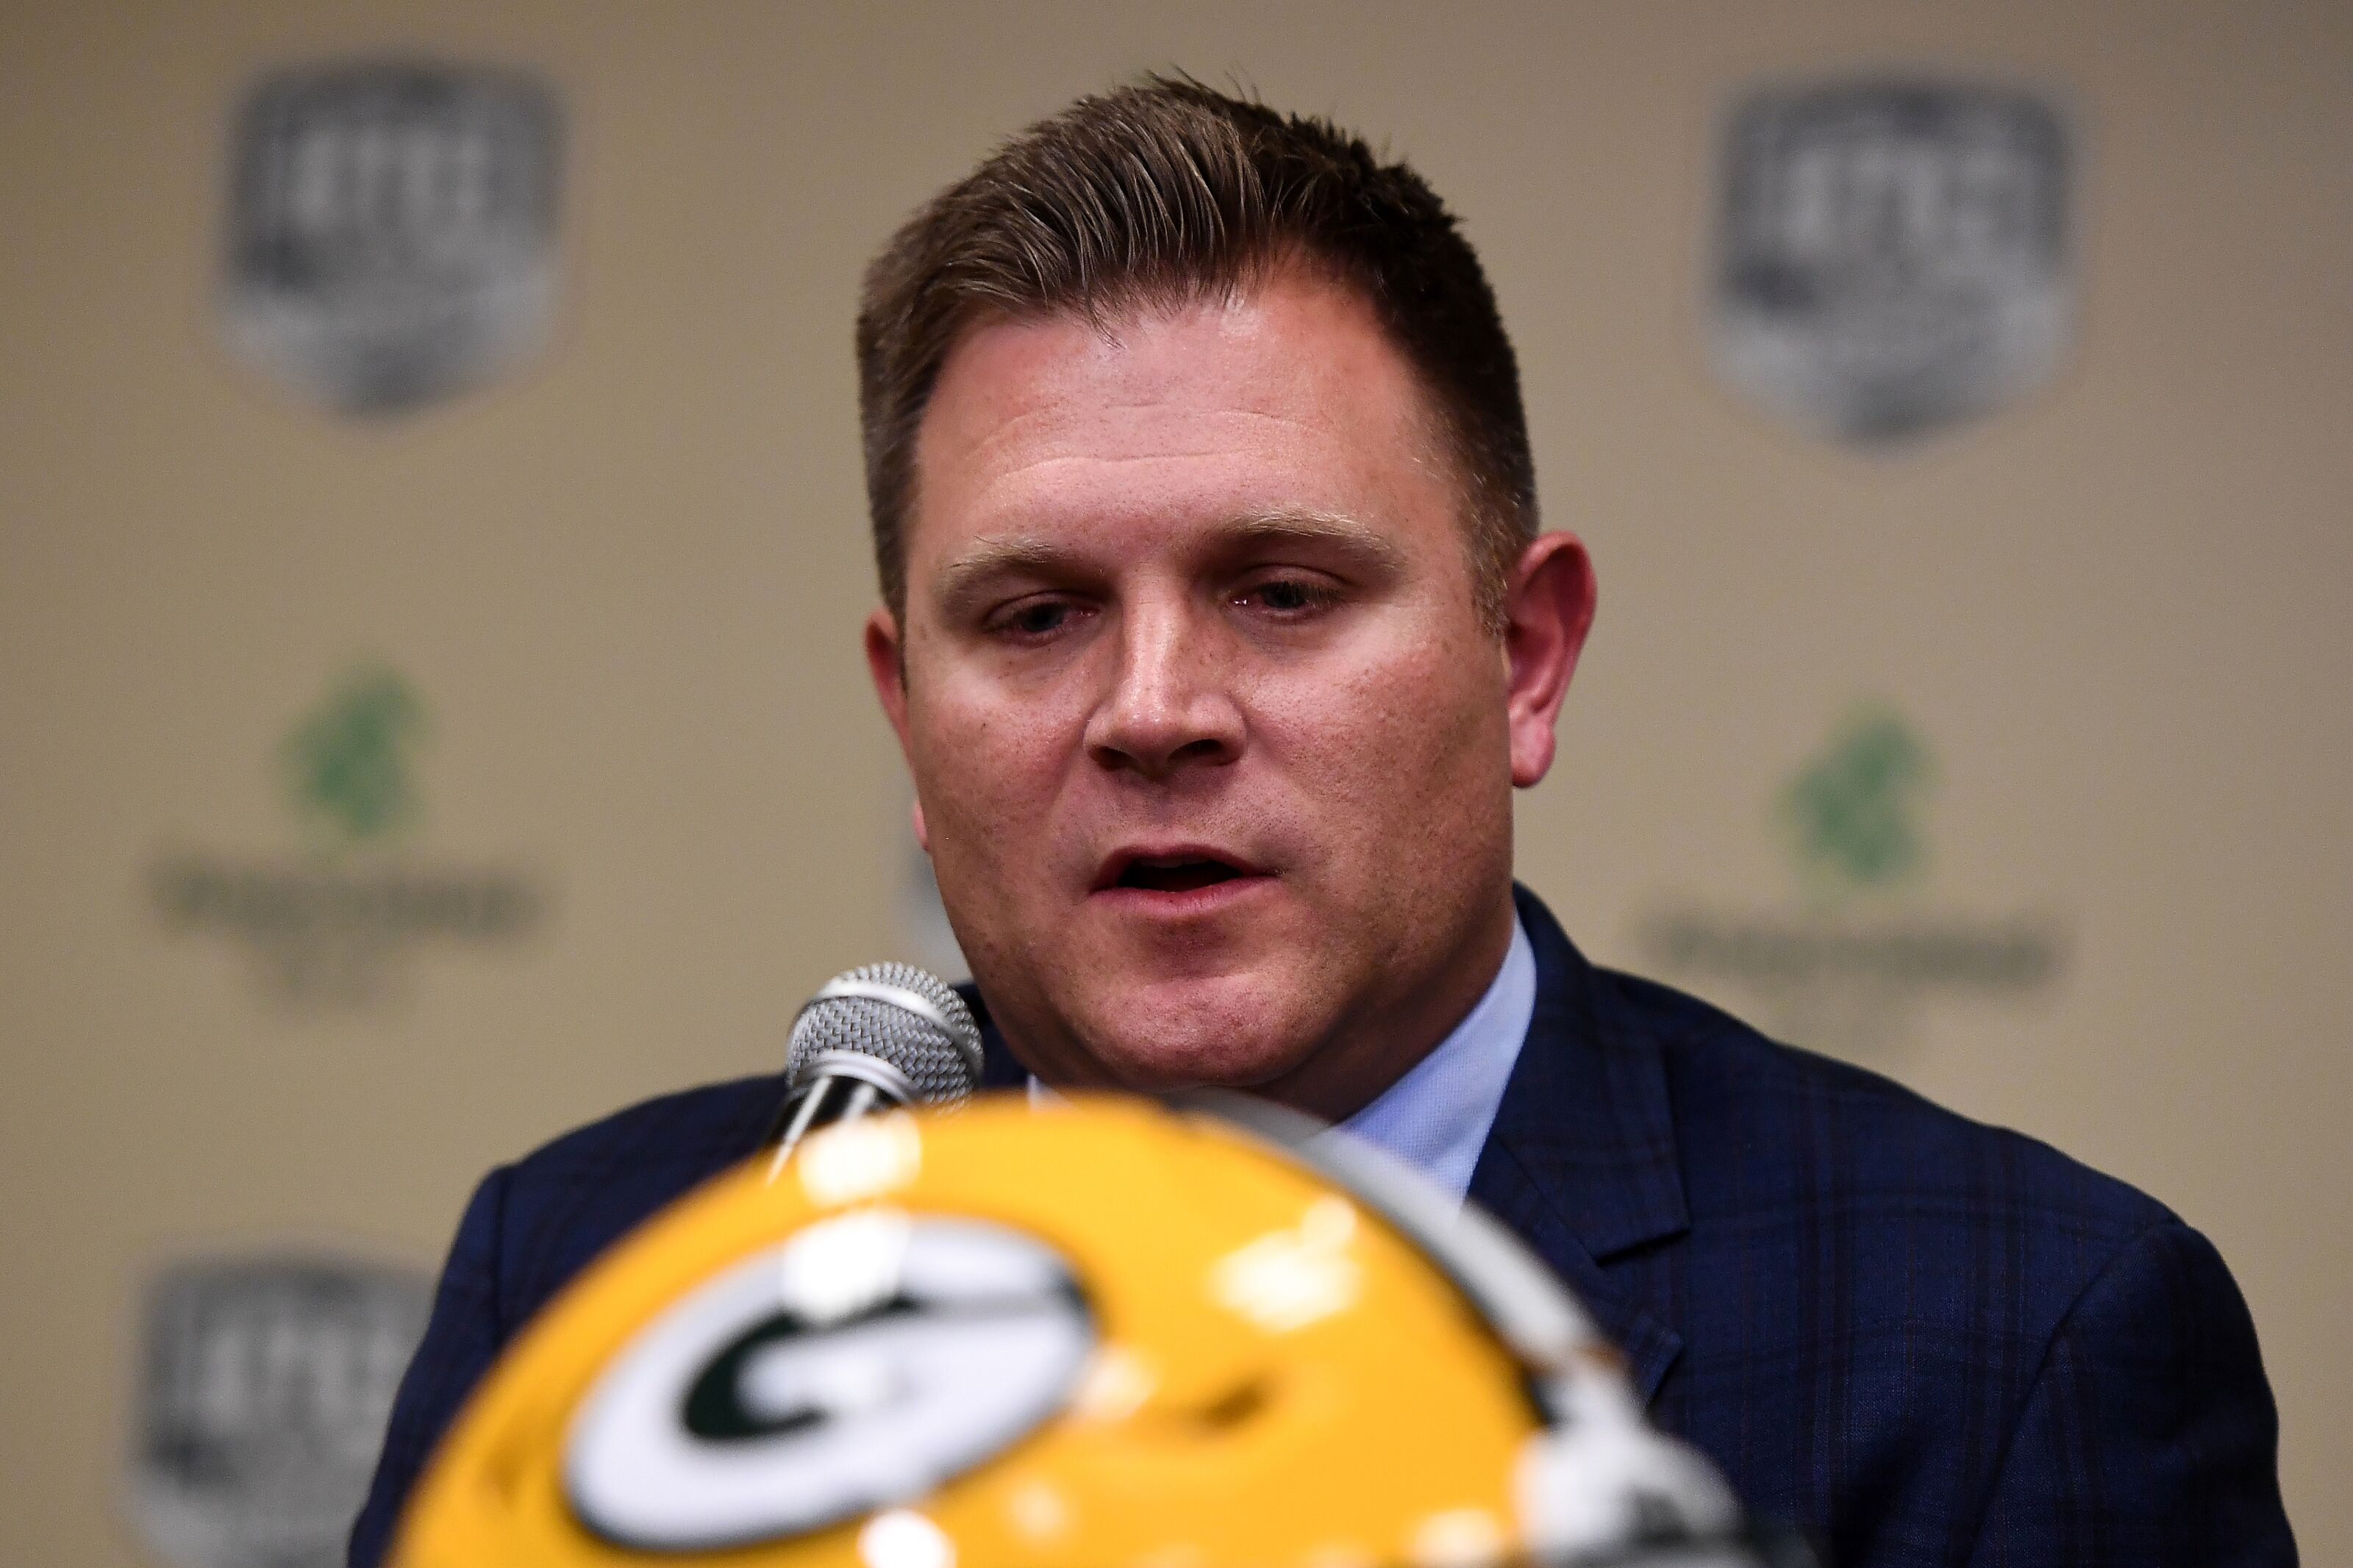 Green Bay Packers have put together a great offseason